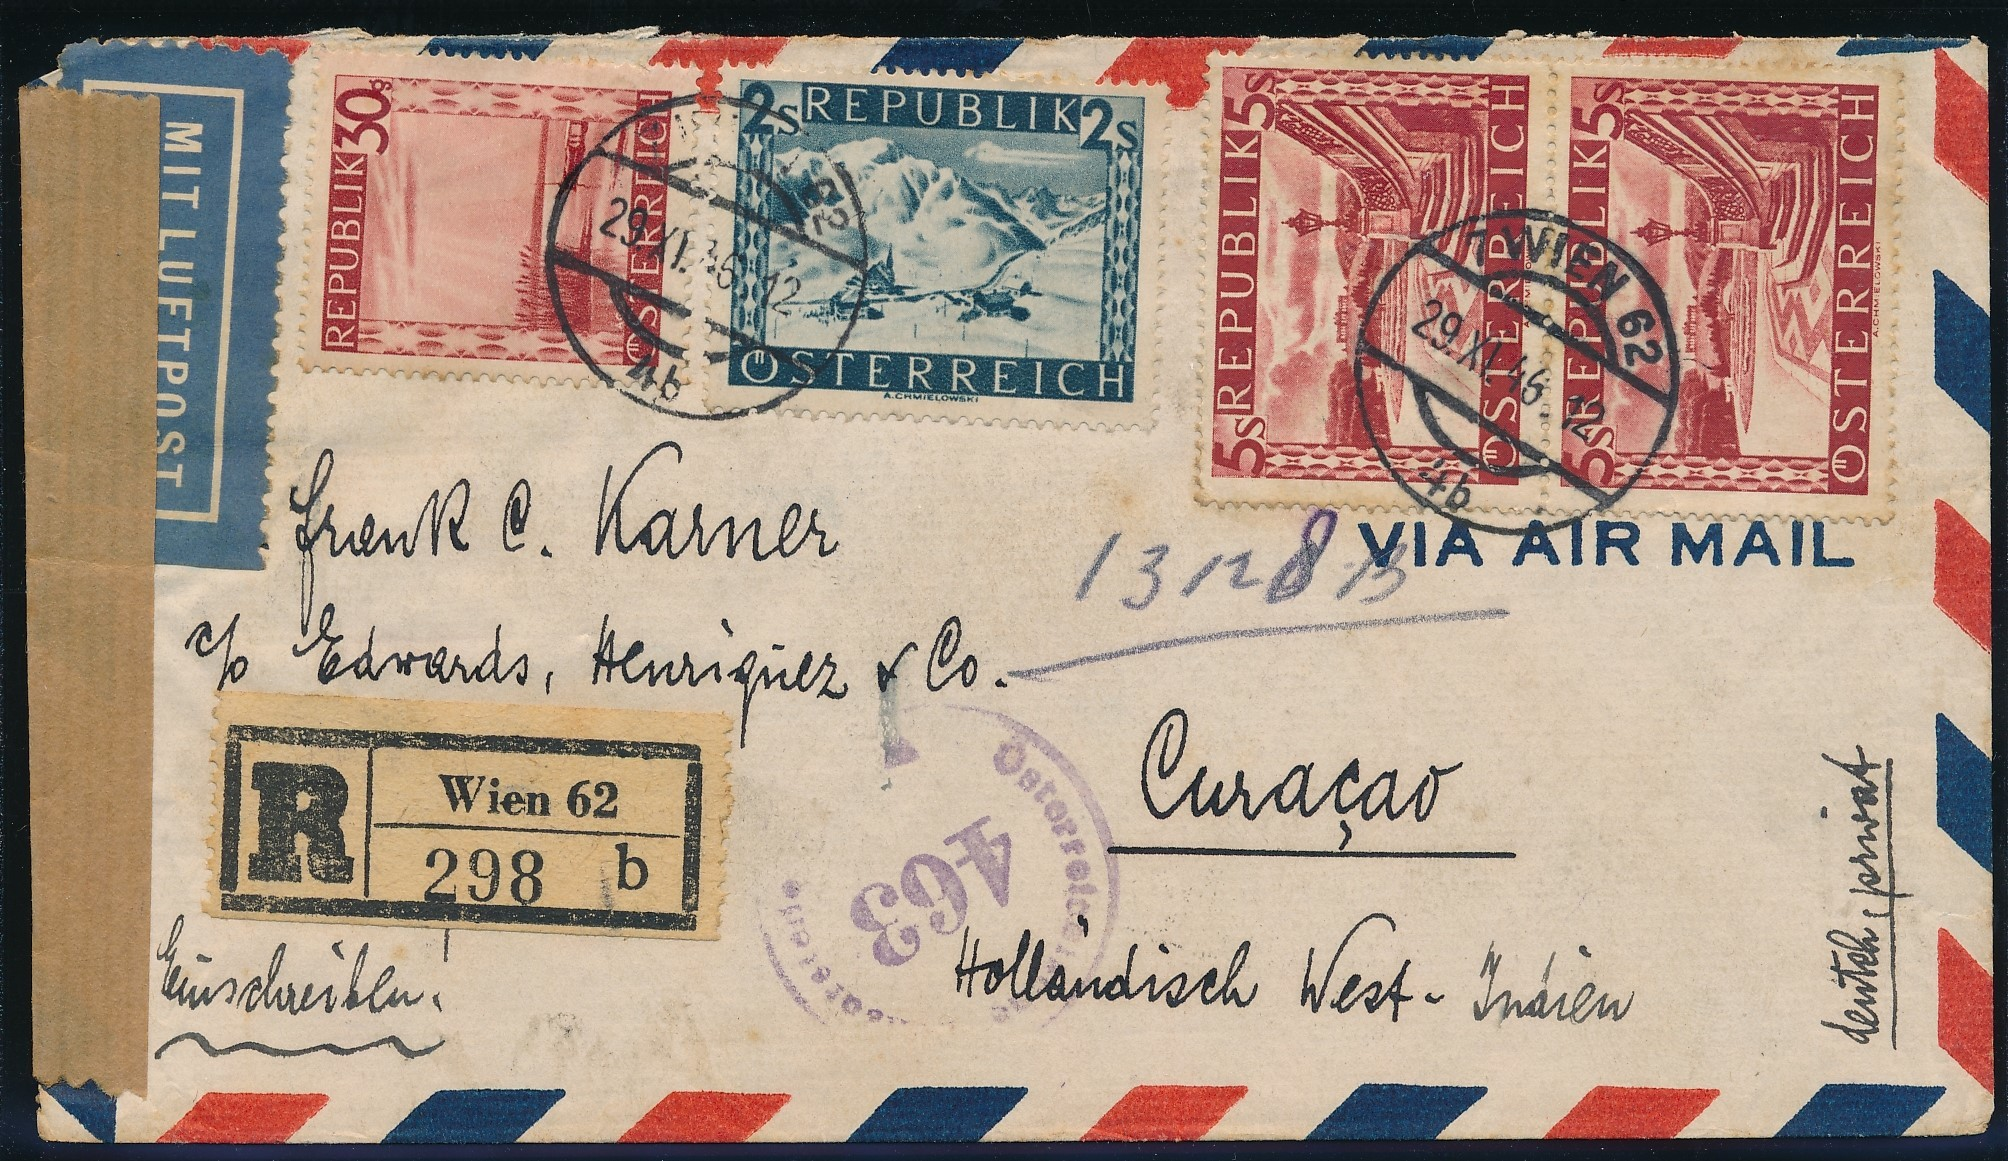 AUSTRIA R air censor cover 1946 to Curaçao CUR216